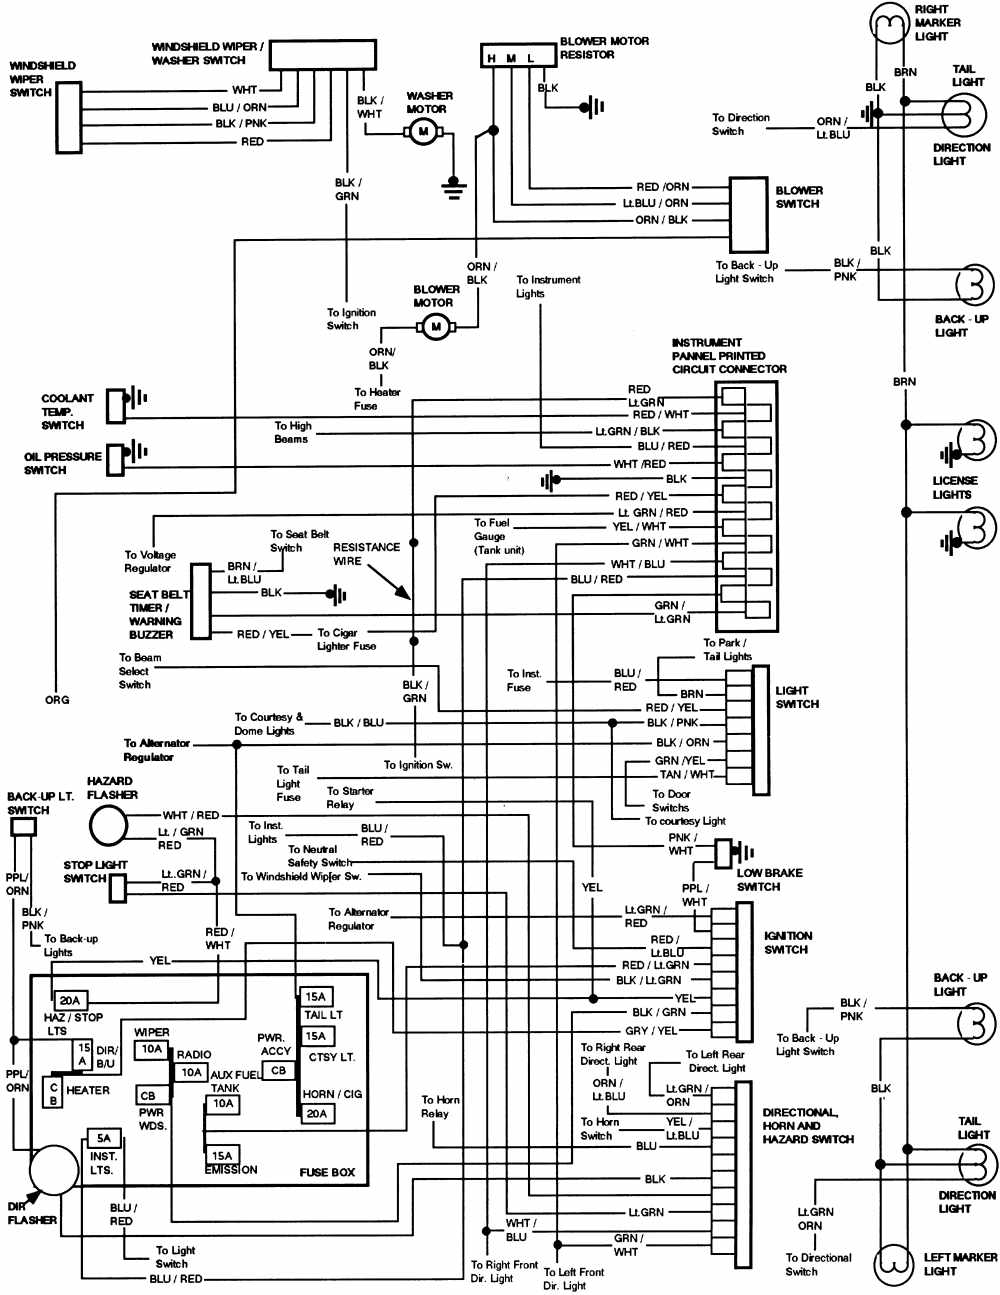 2008 ford econoline wiring diagrams